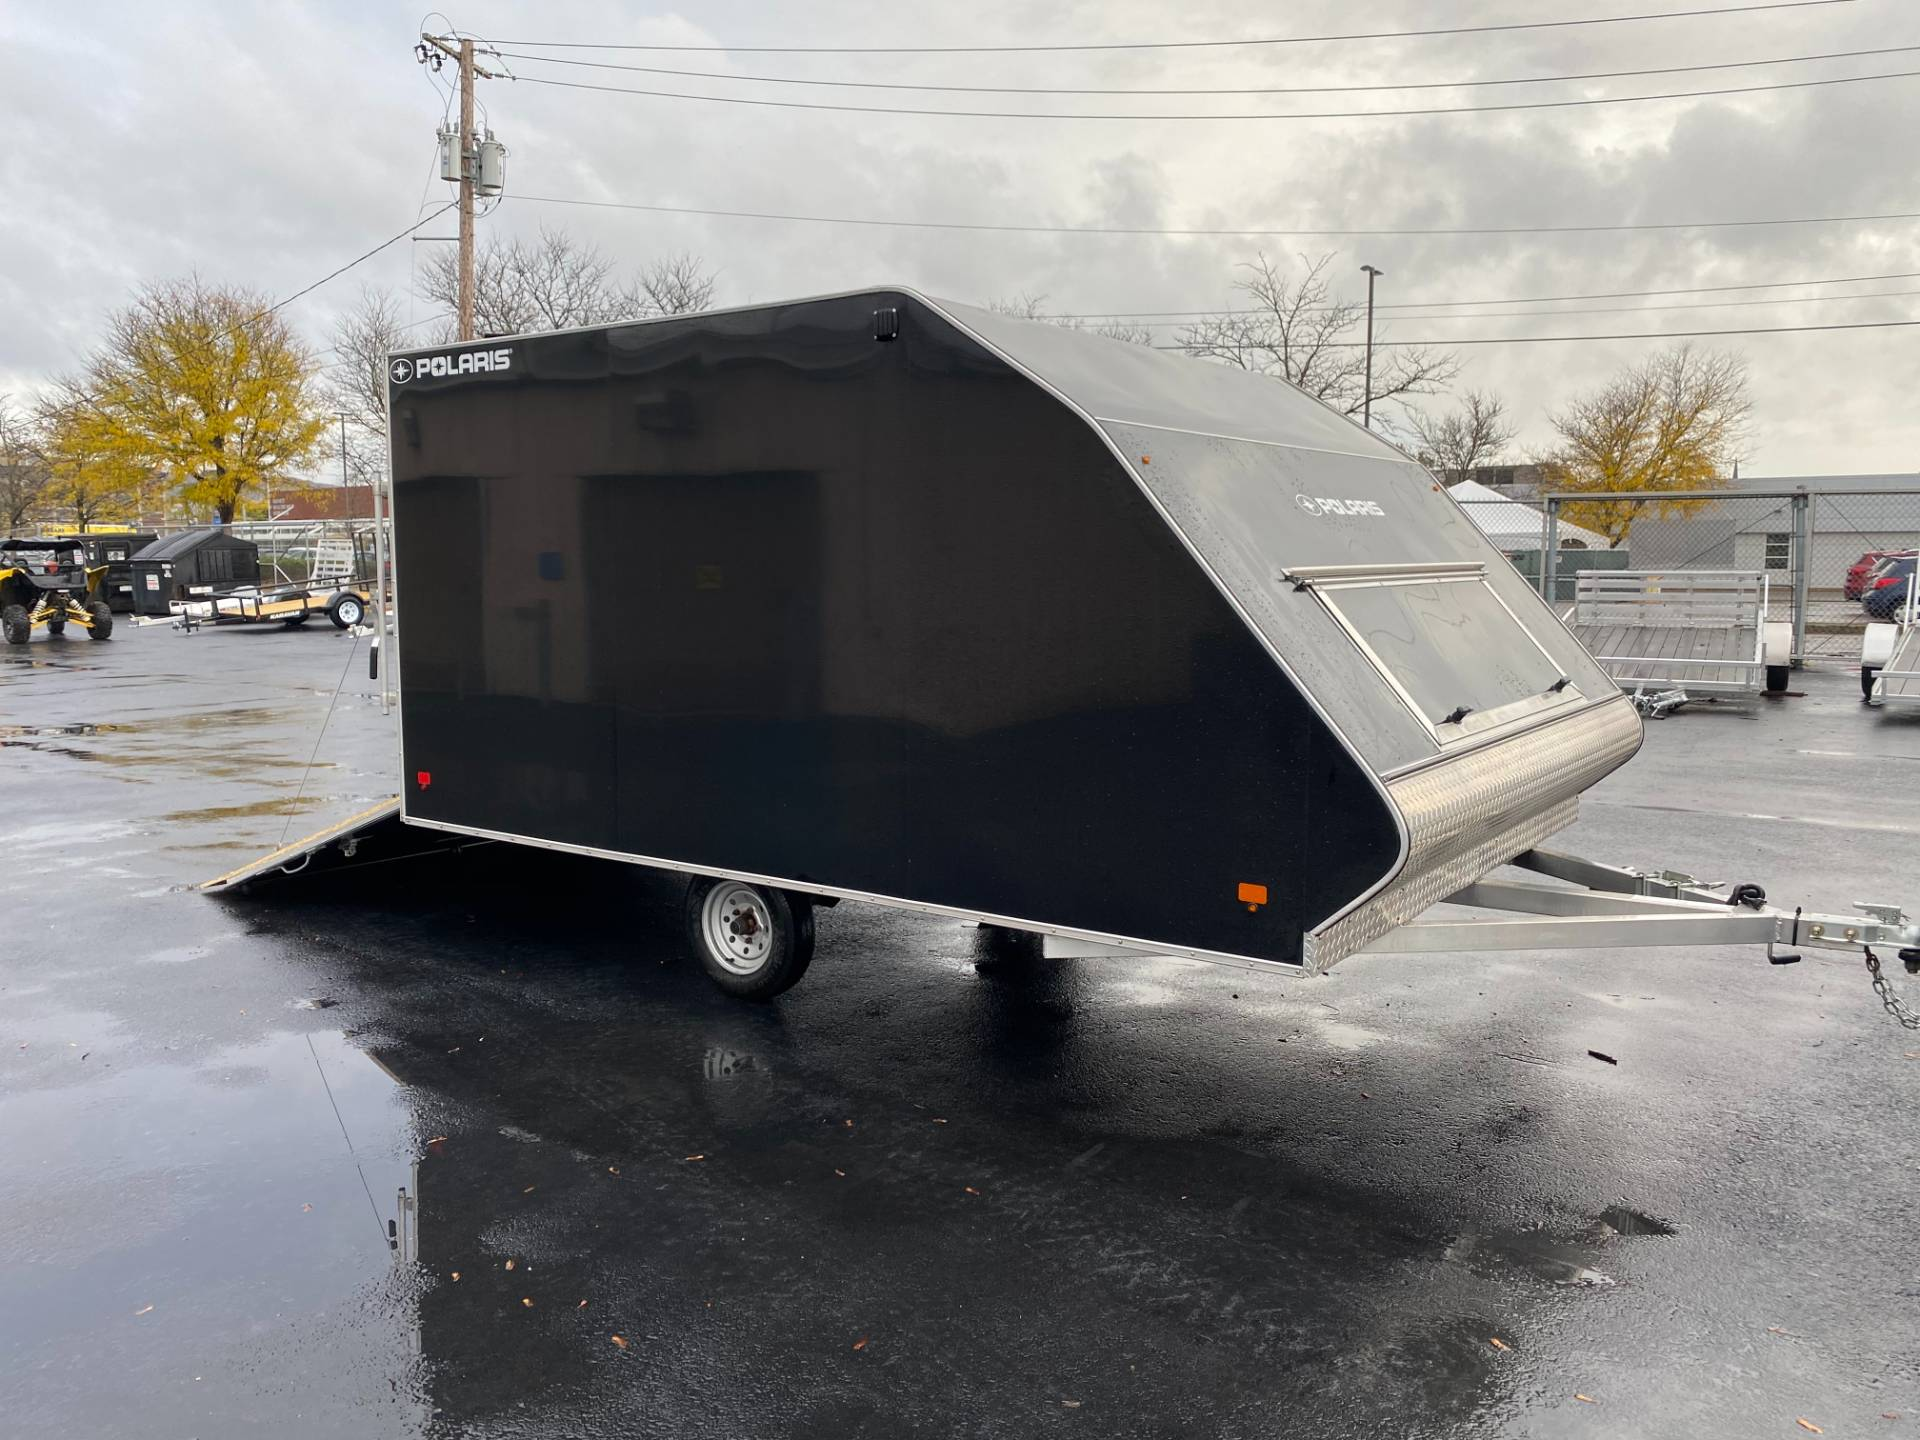 2018 Mission Trailers Crossover Snowmobile Trailers (MFS 101 x 12 Crossover) in Herkimer, New York - Photo 17